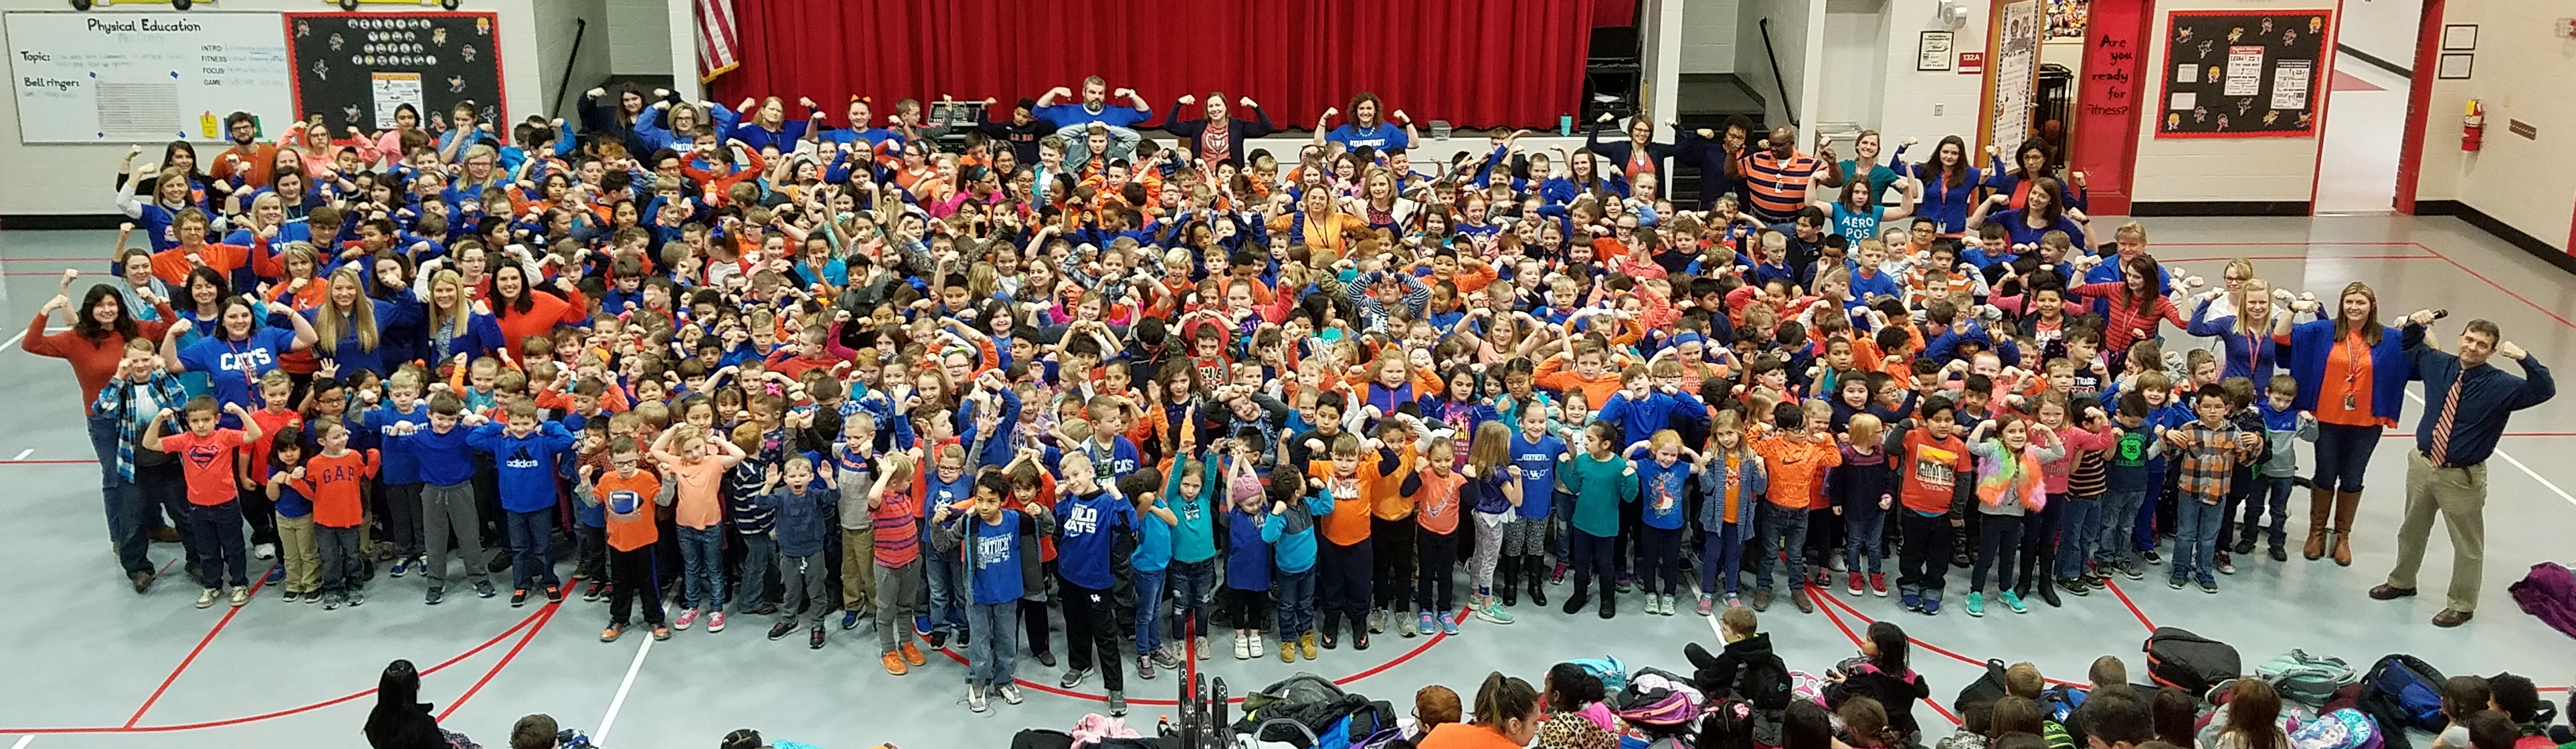 Students and staff wearing orange and blue to support Marshall County Schools.